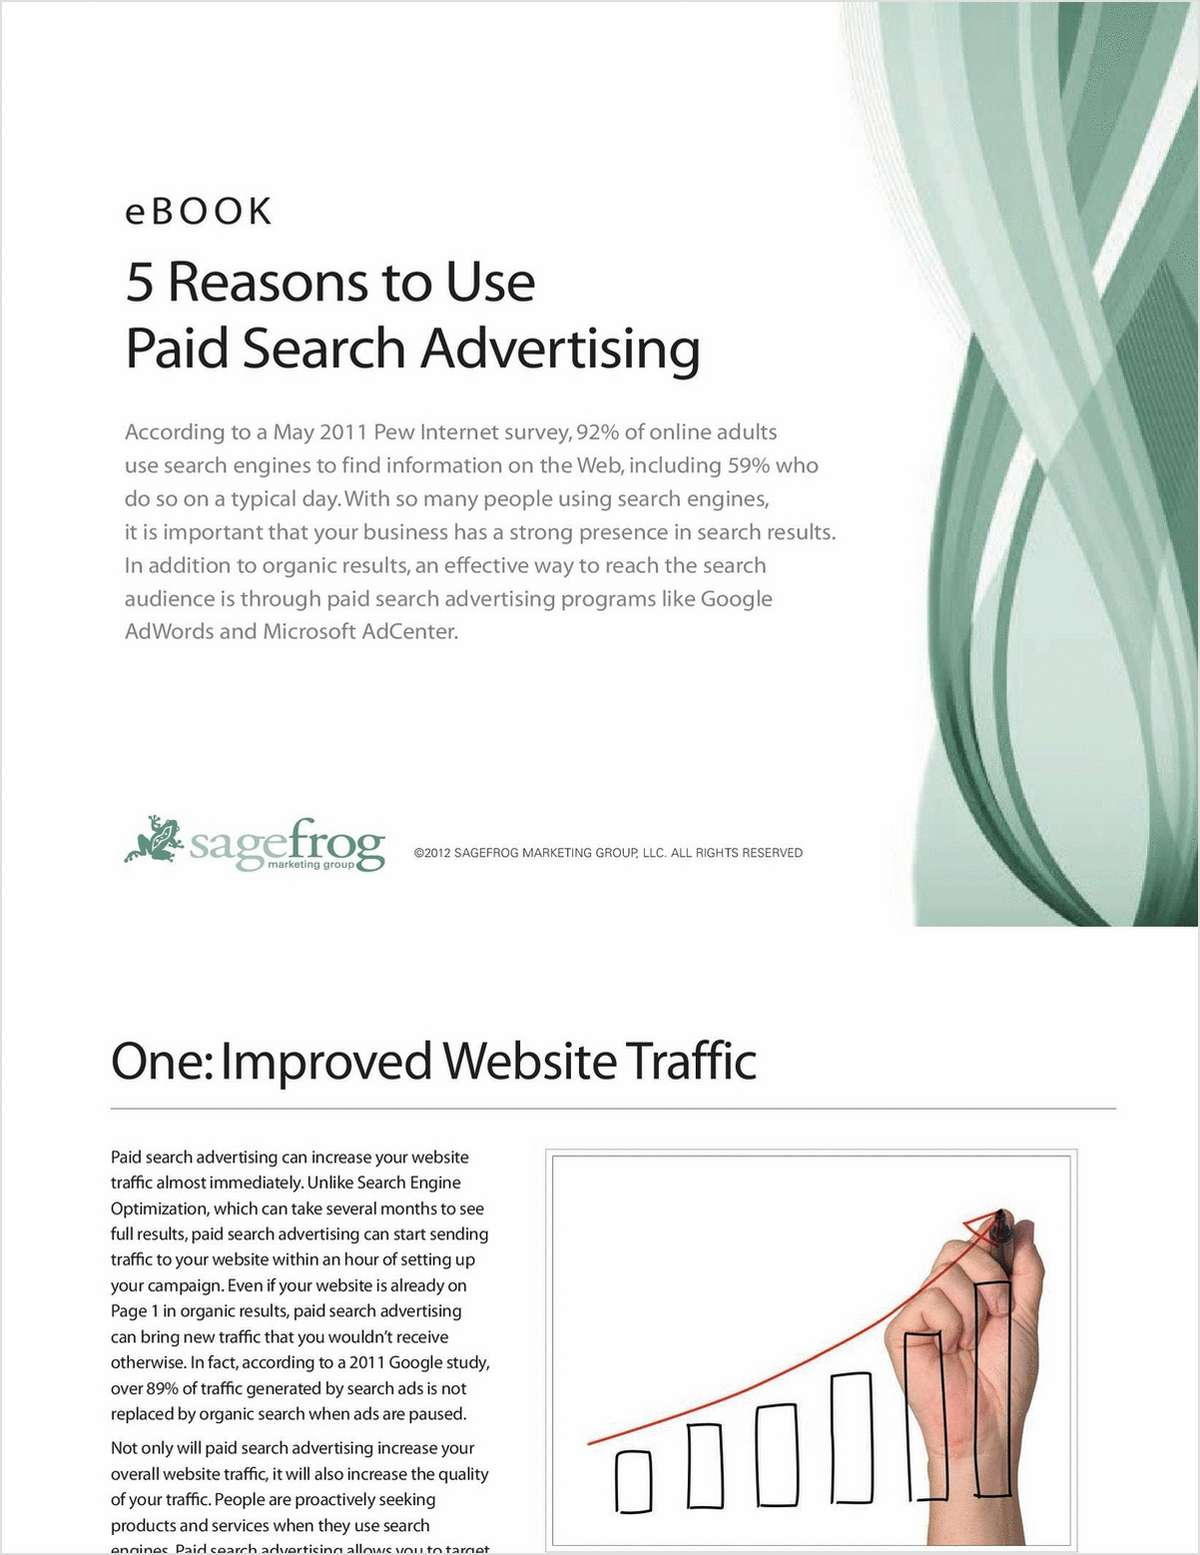 5 Reasons to Use Paid Search Advertising